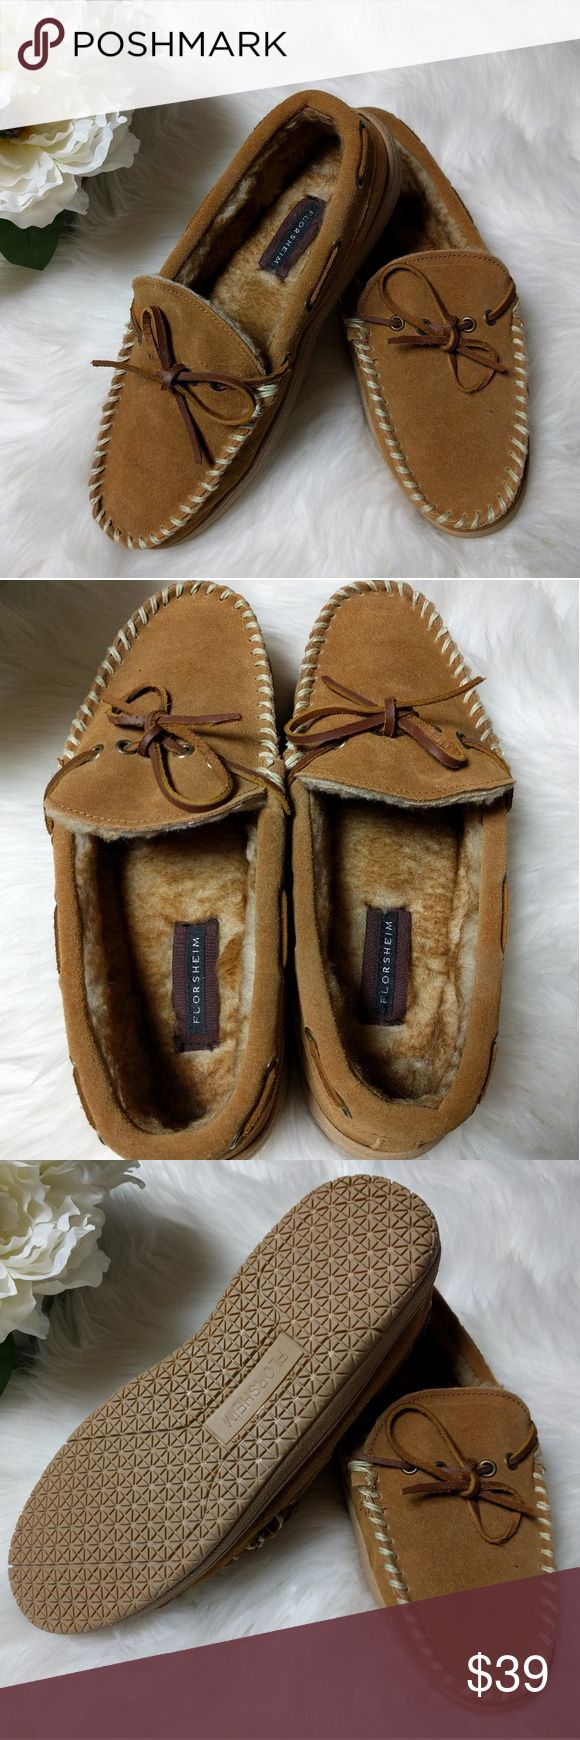 Florsheim Leather Slippers Brand New!! Florsheim men's leather slippers. Size 9. A perfect gift for the holidays! Soft and comfortable. Florsheim Shoes Loafers & Slip-Ons